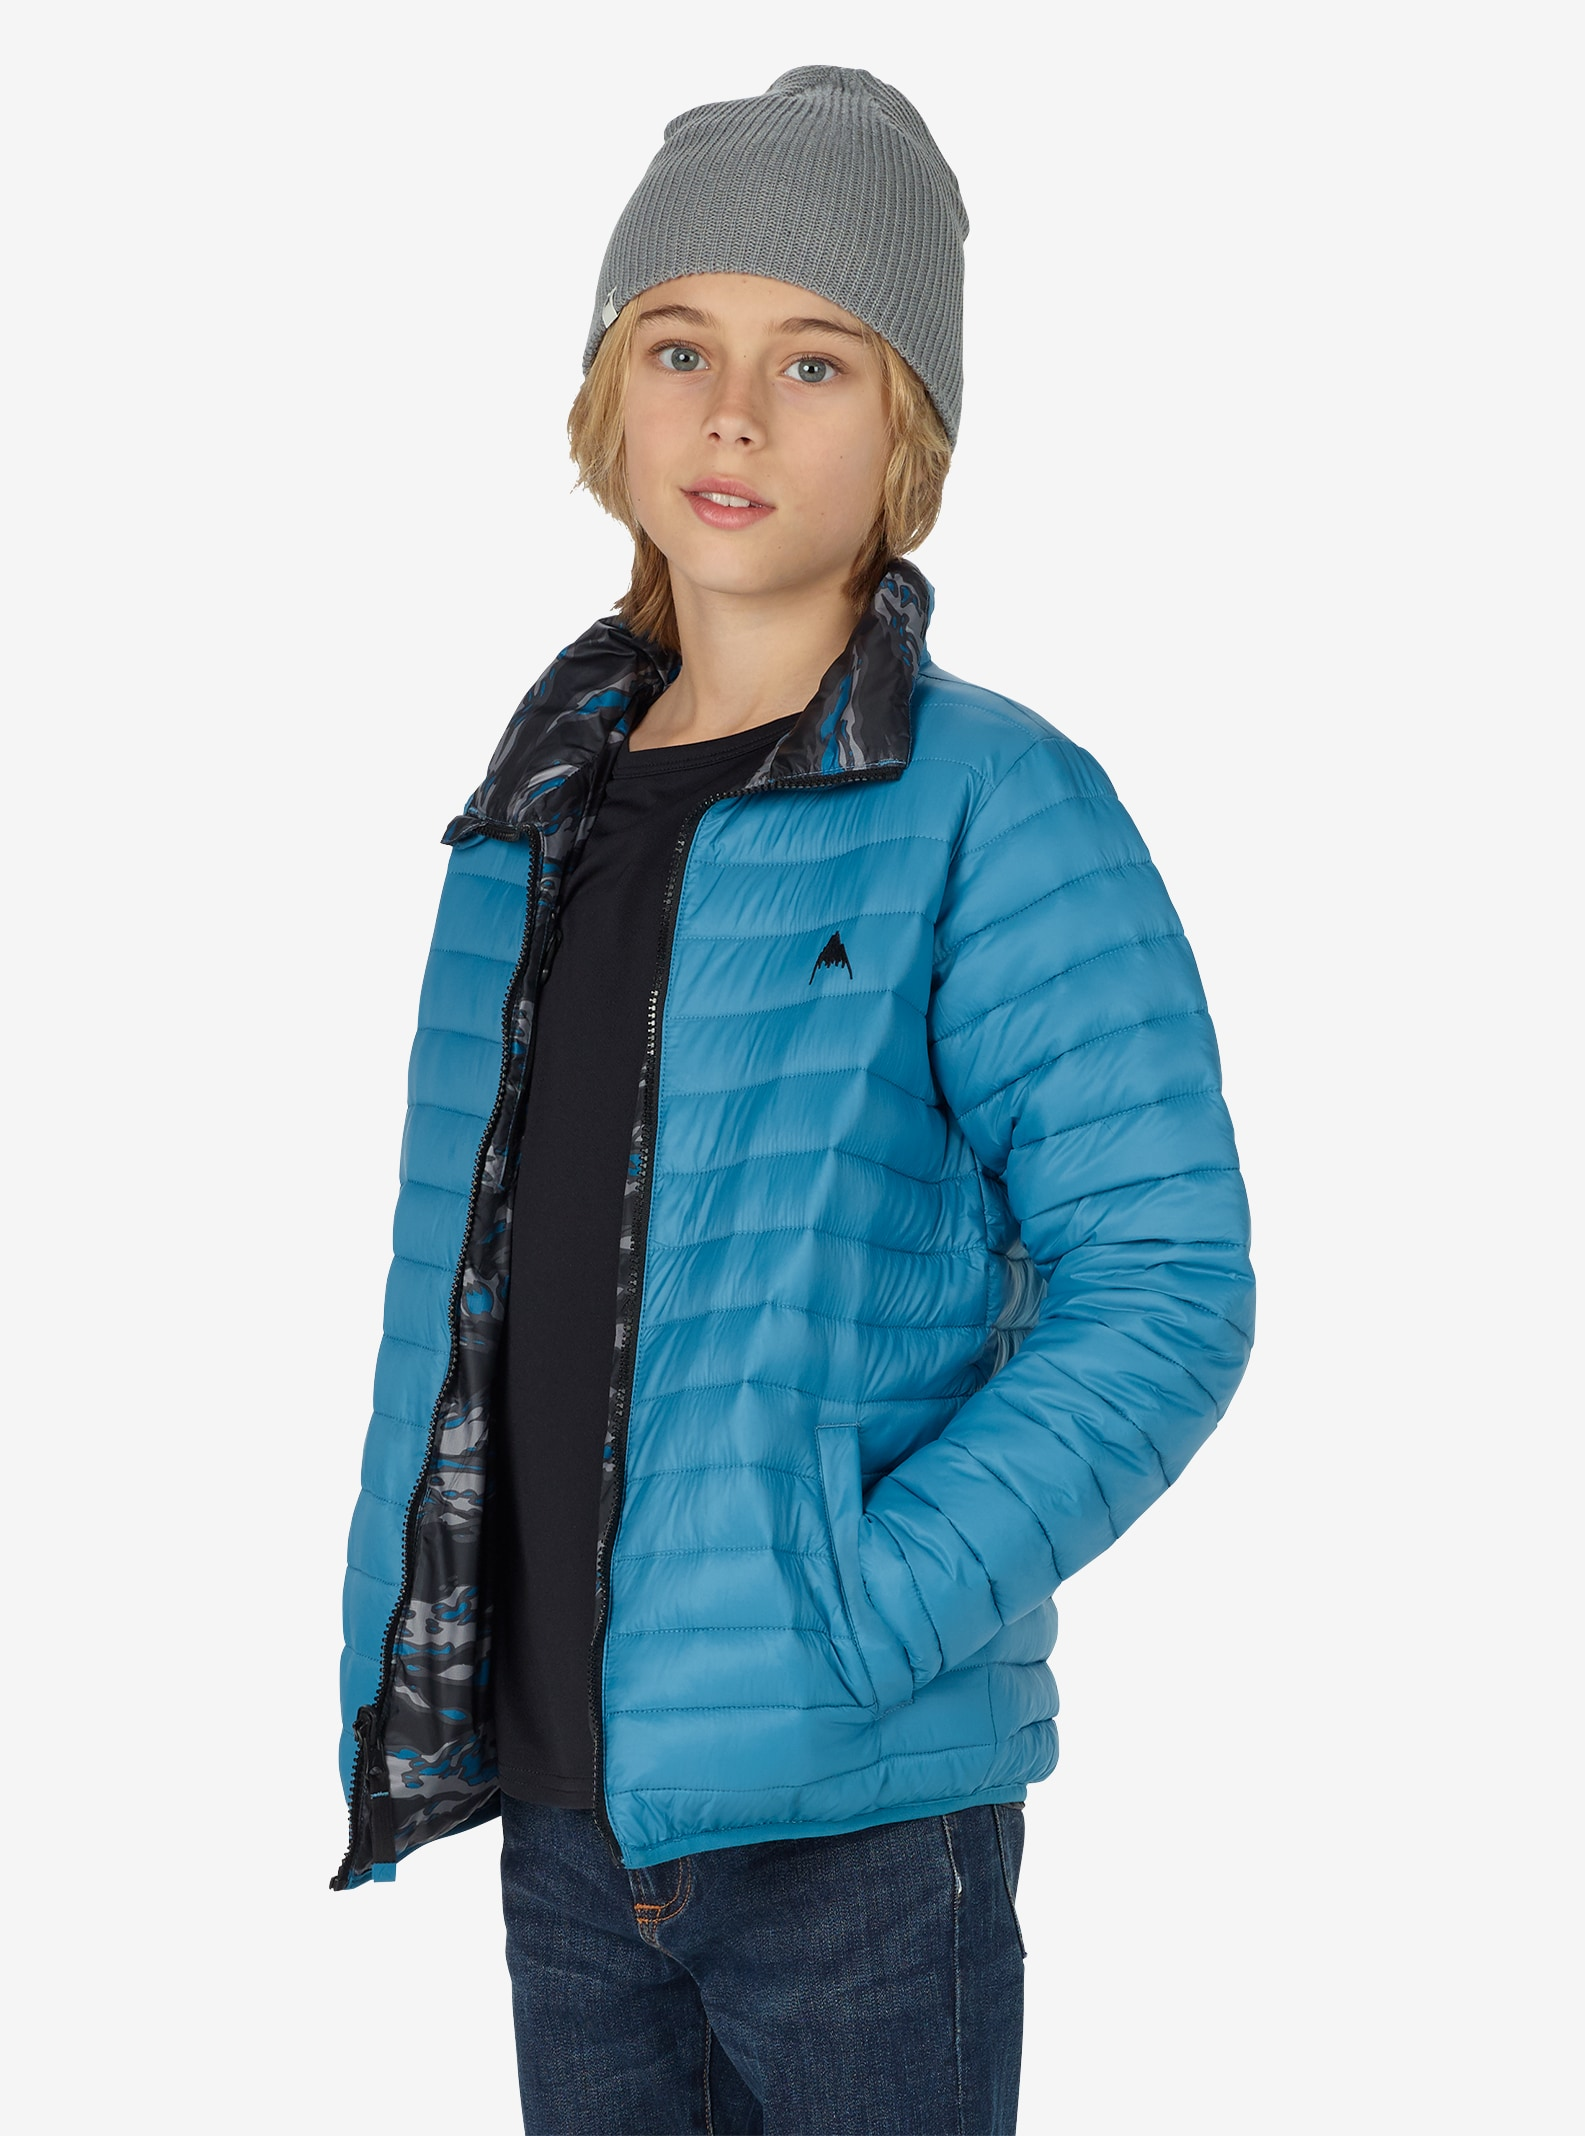 Kids' Burton Reversible Flex Puffy Jacket shown in Mountaineer / Mountaineer Beast